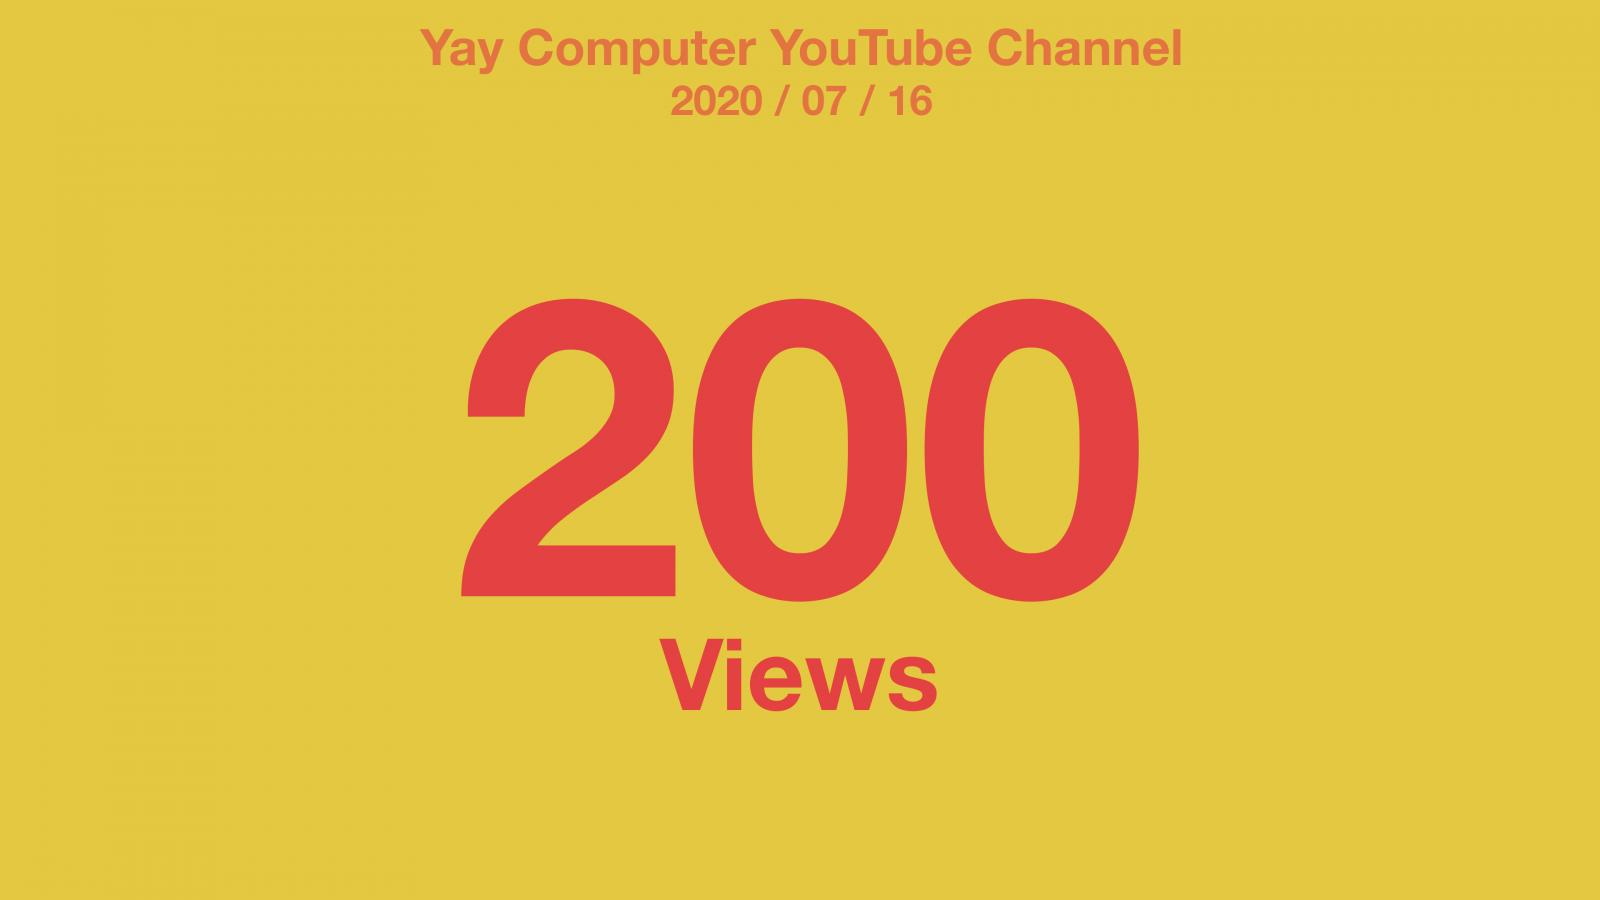 Yay Computer YouTube Channel 2020/07/16 200 Views